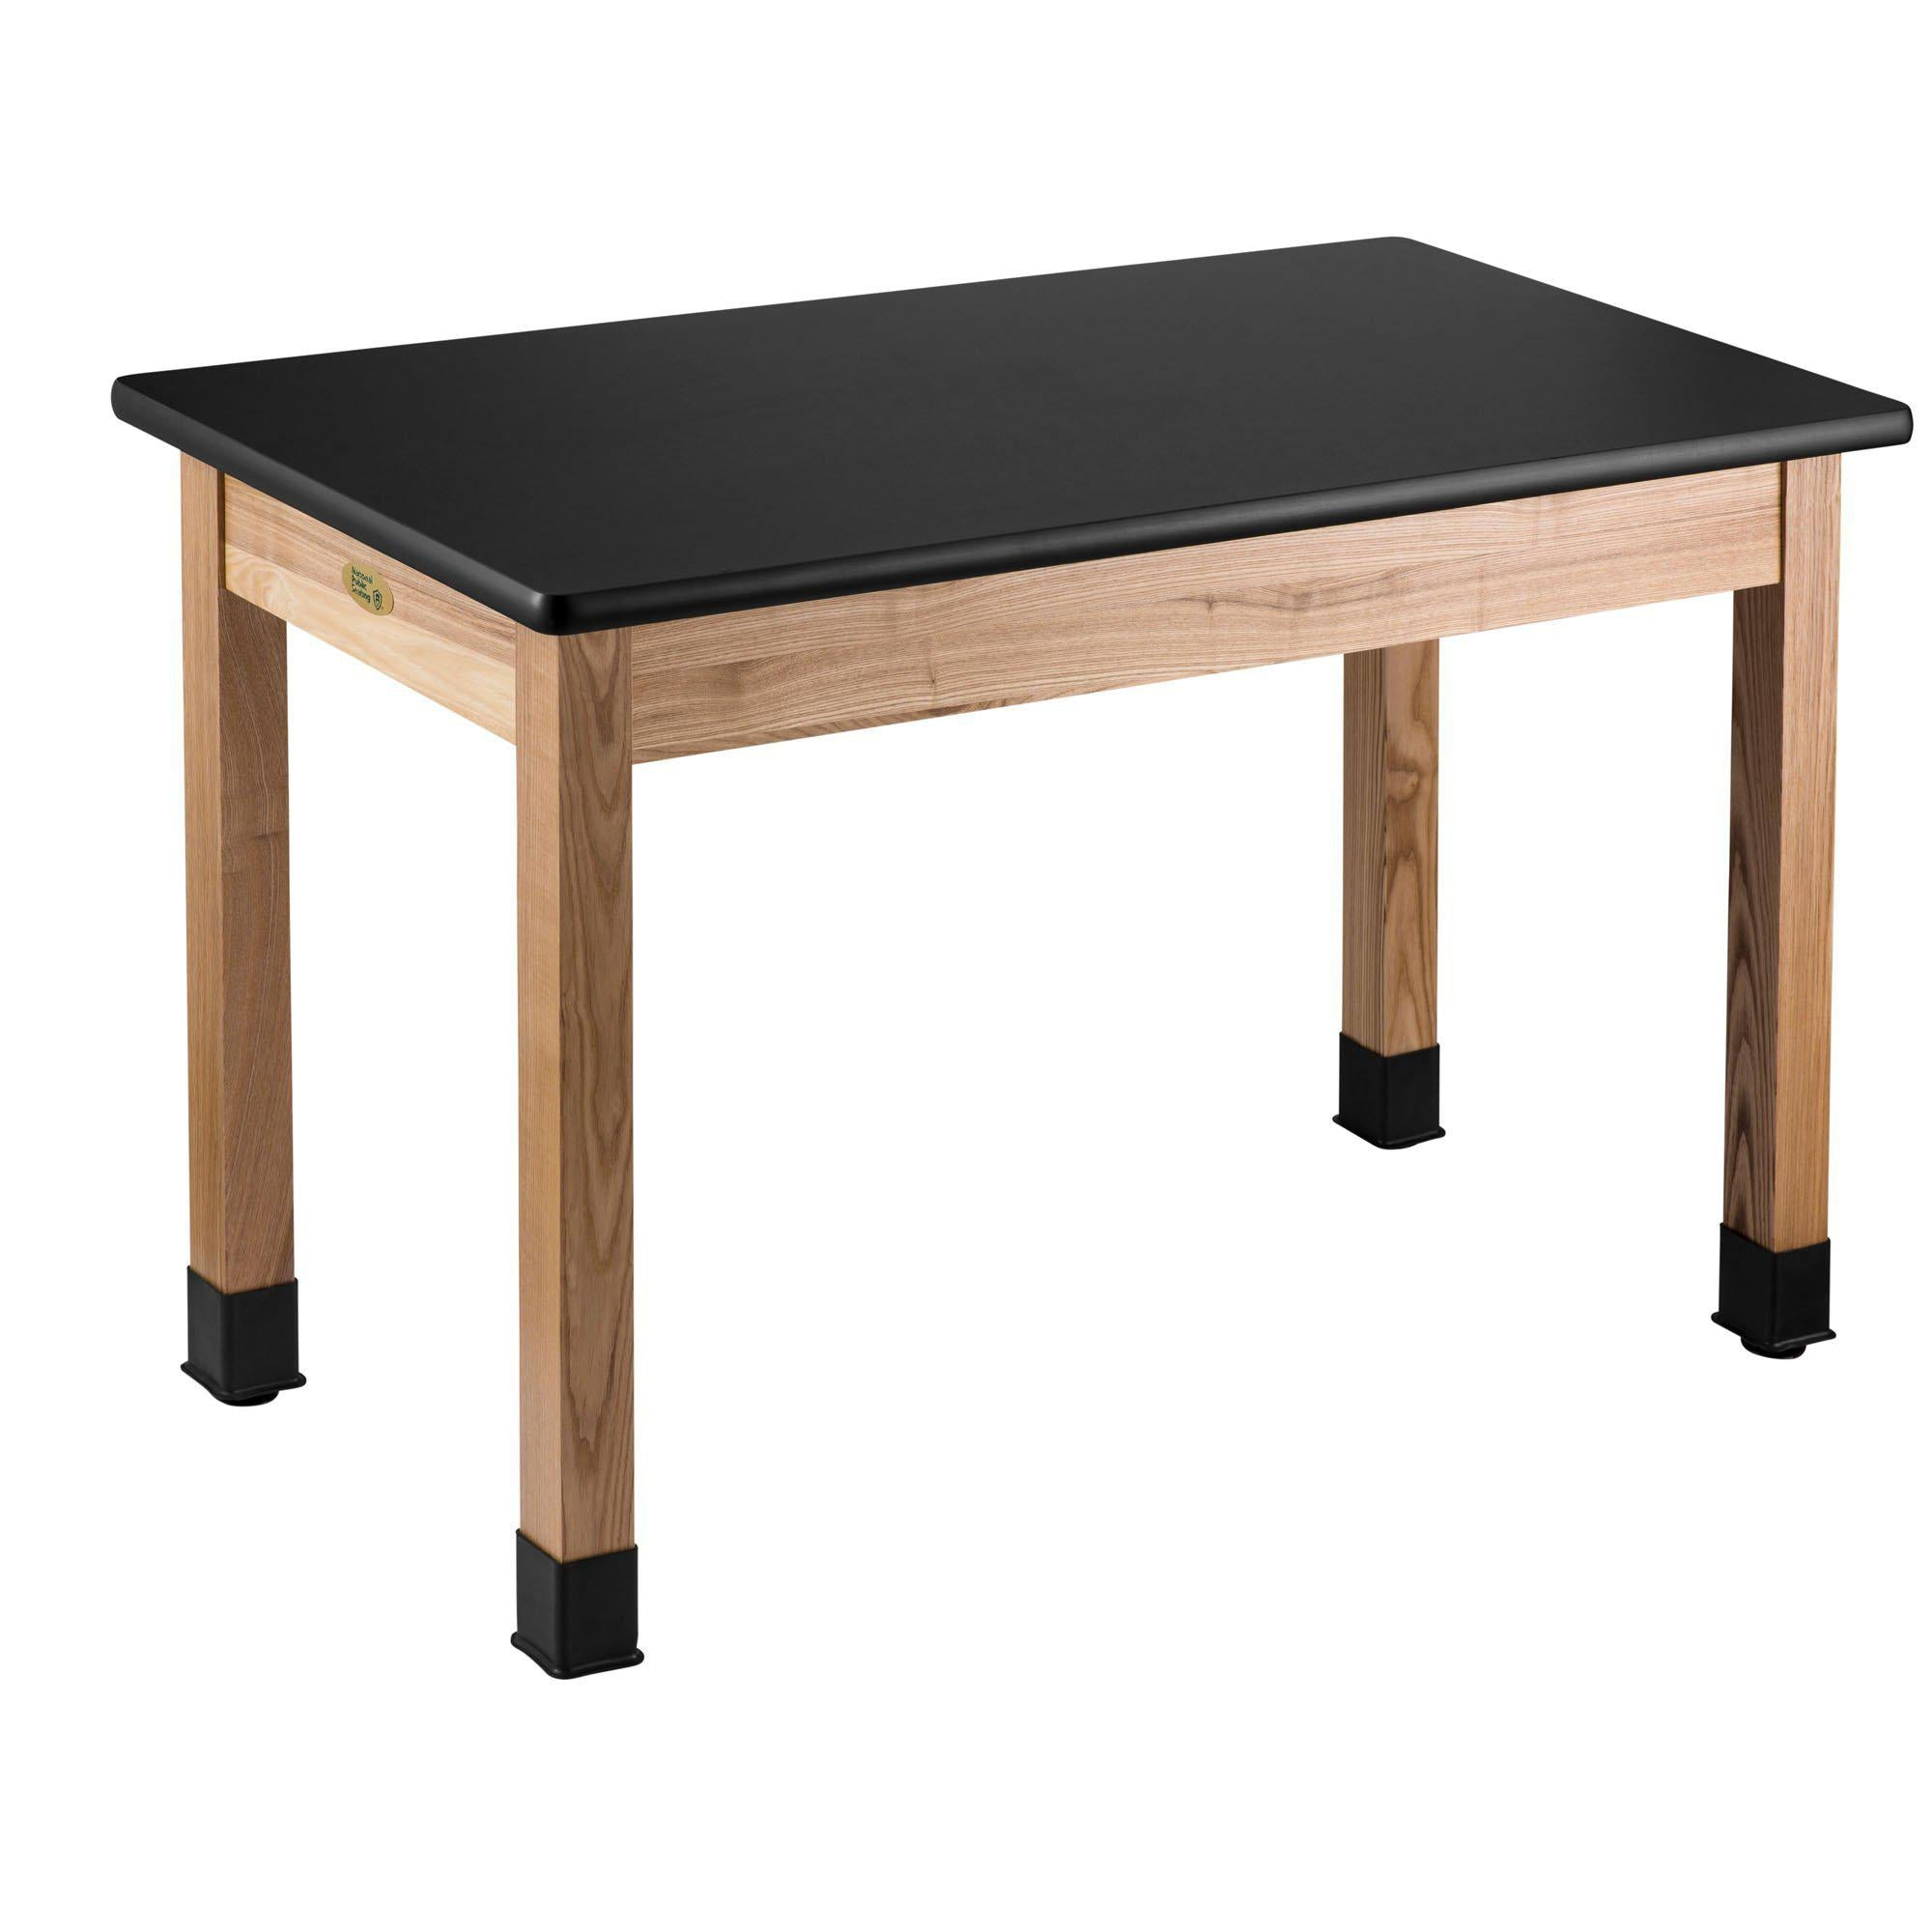 Science Lab Tables with Solid Wood Legs, High Pressure Laminate Top